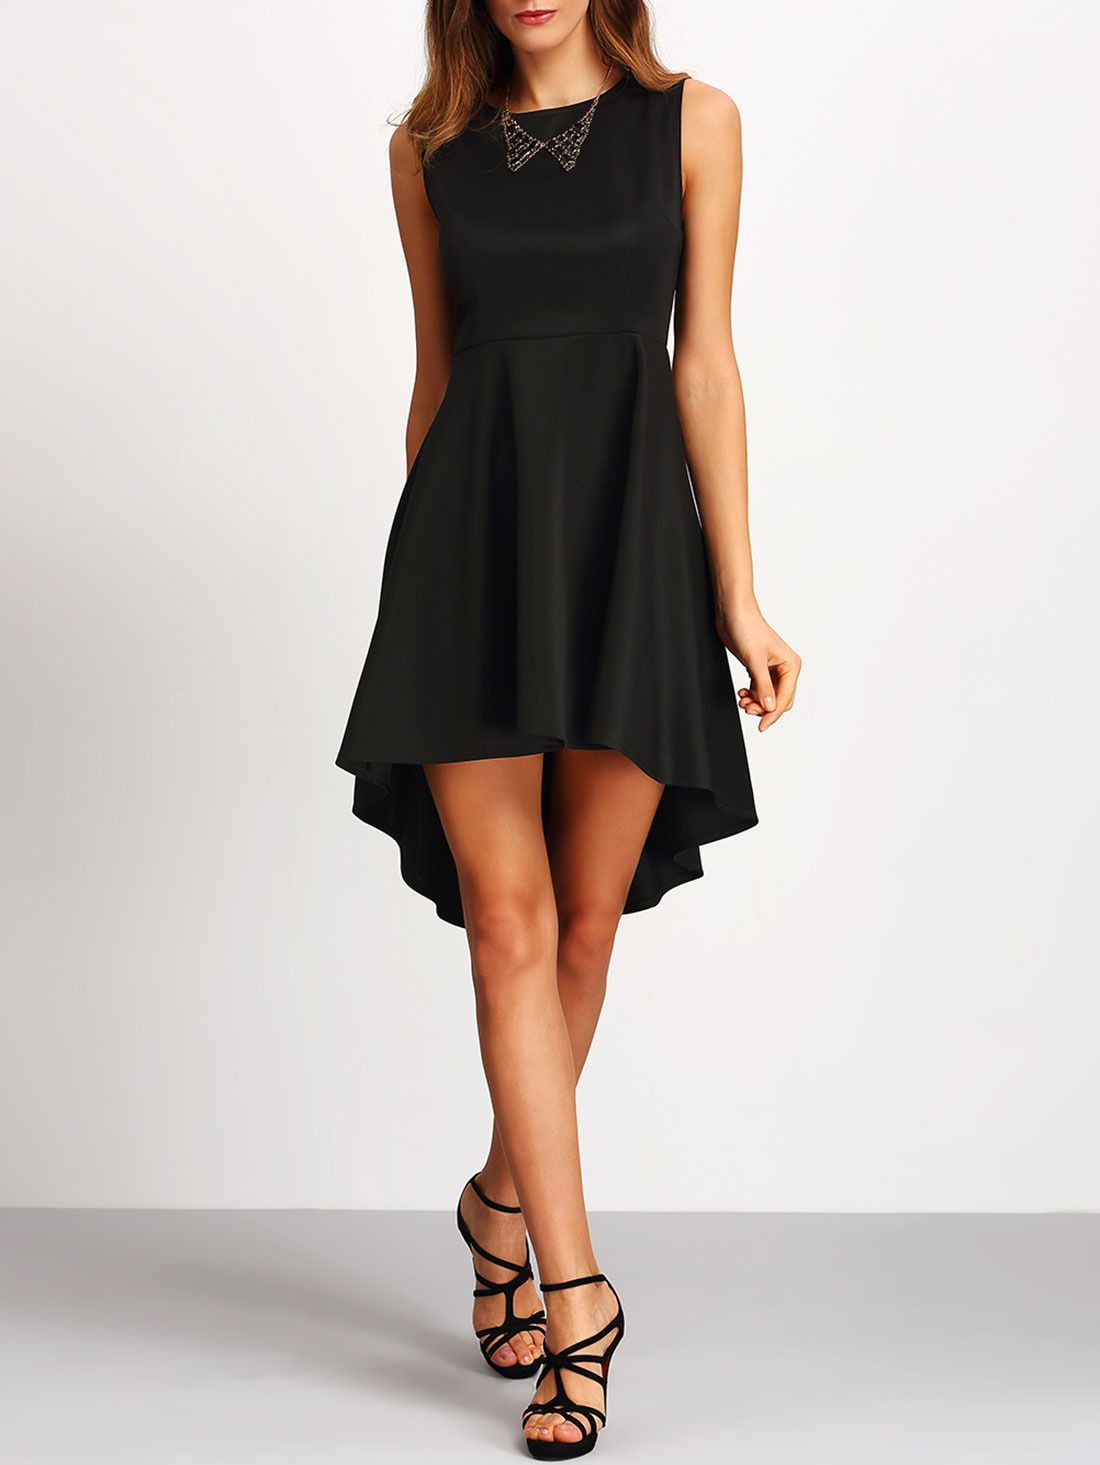 shein(sheinside)-women fast fashion online | asymmetrisches